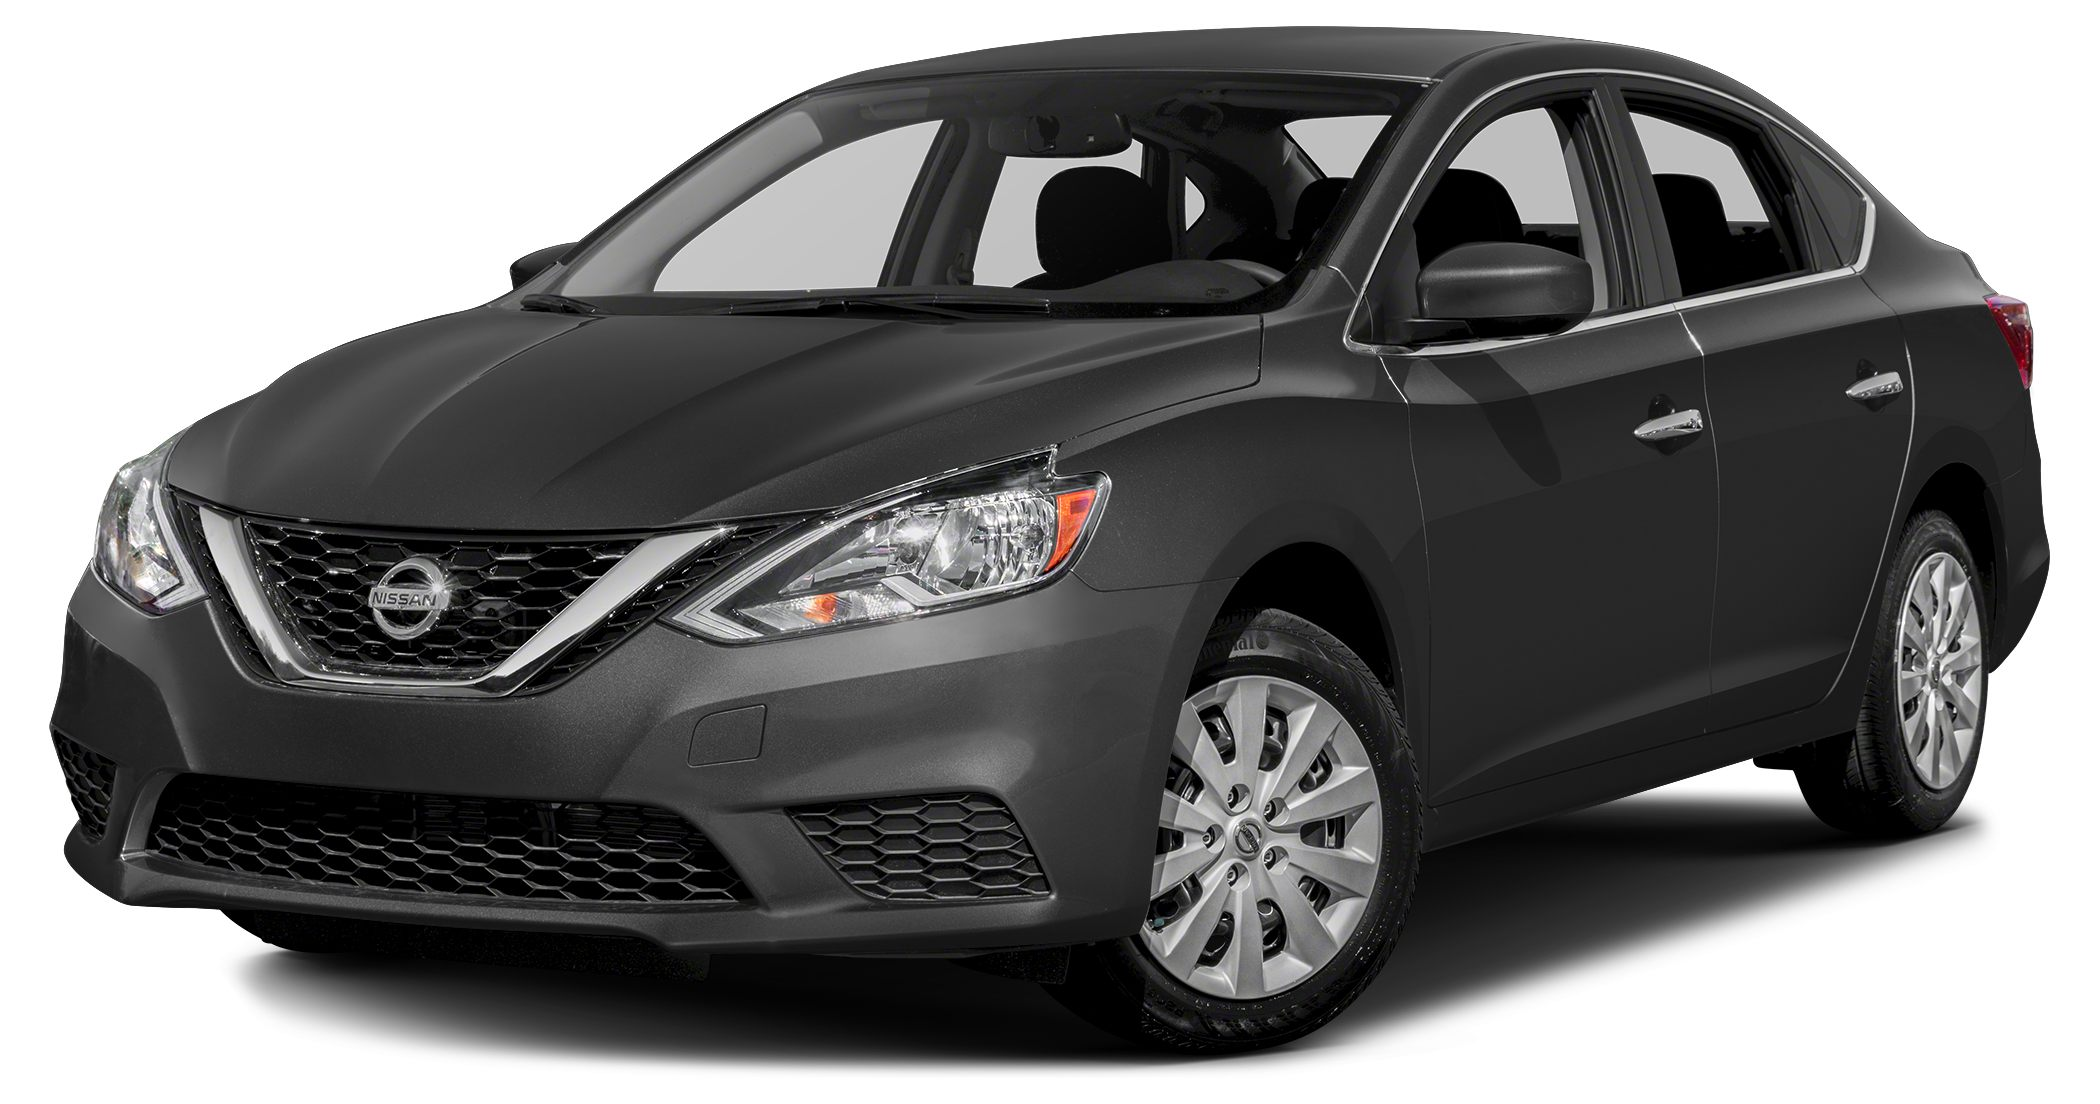 2017 Nissan Sentra S SAVE THOUSANDS OVER A NEW SENTRA FACTORY CERTIFIED SO YOU GET A 7 YEAR  100